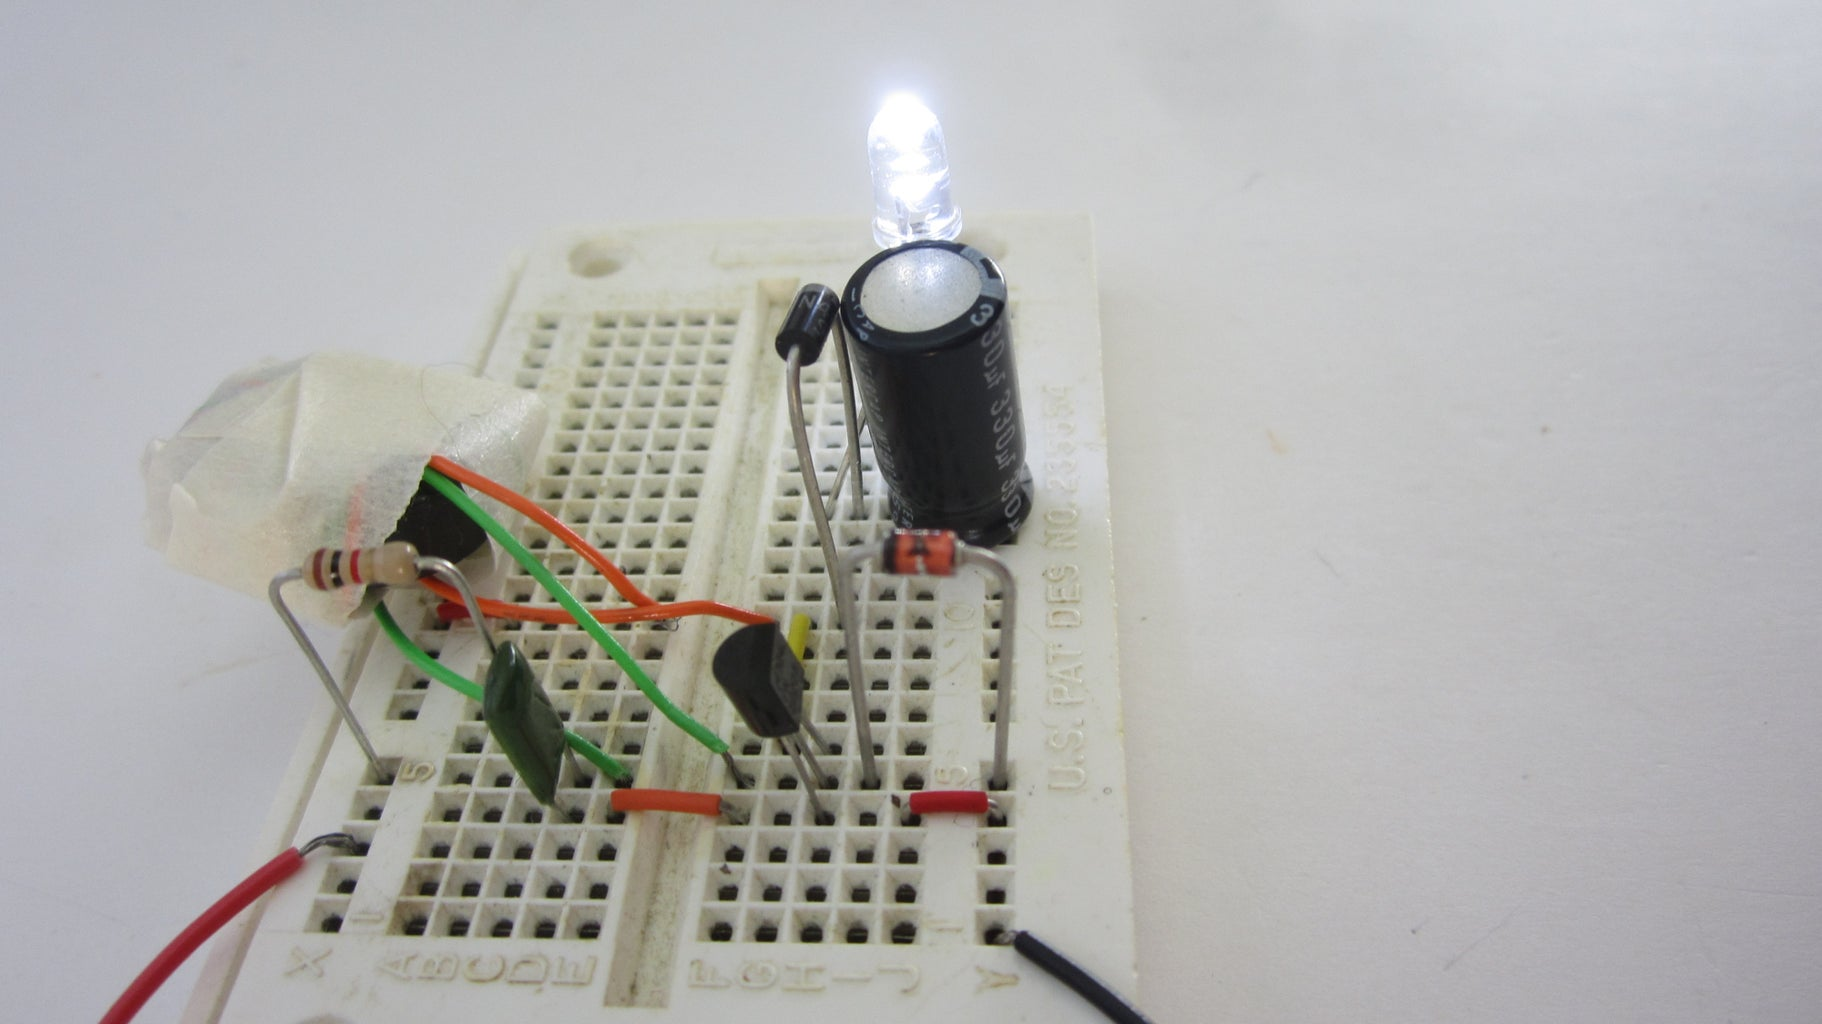 Prototype the The Circuit on a Breadboard